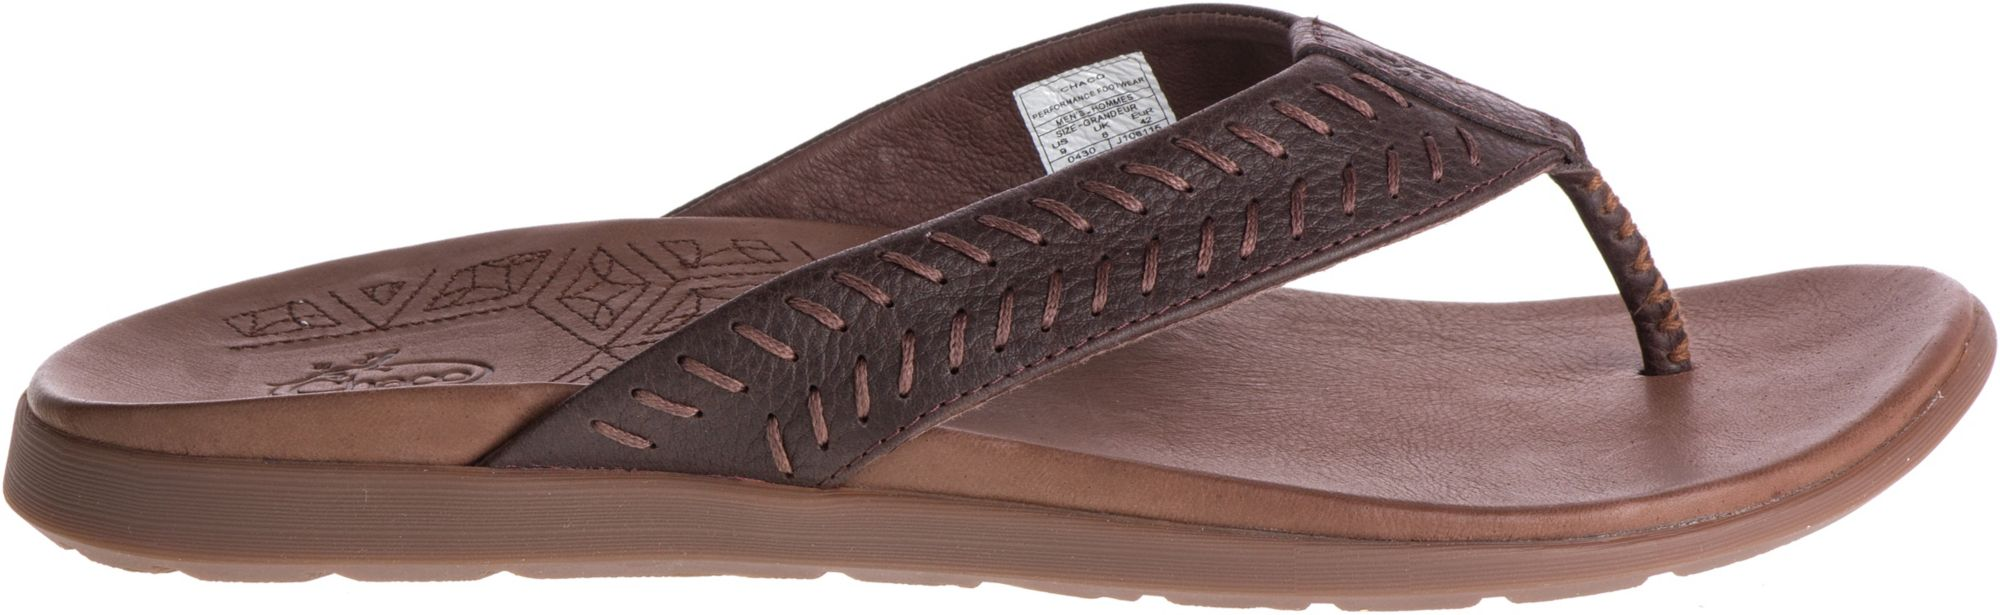 Chaco Men's Jackson Flip Flops by Chaco